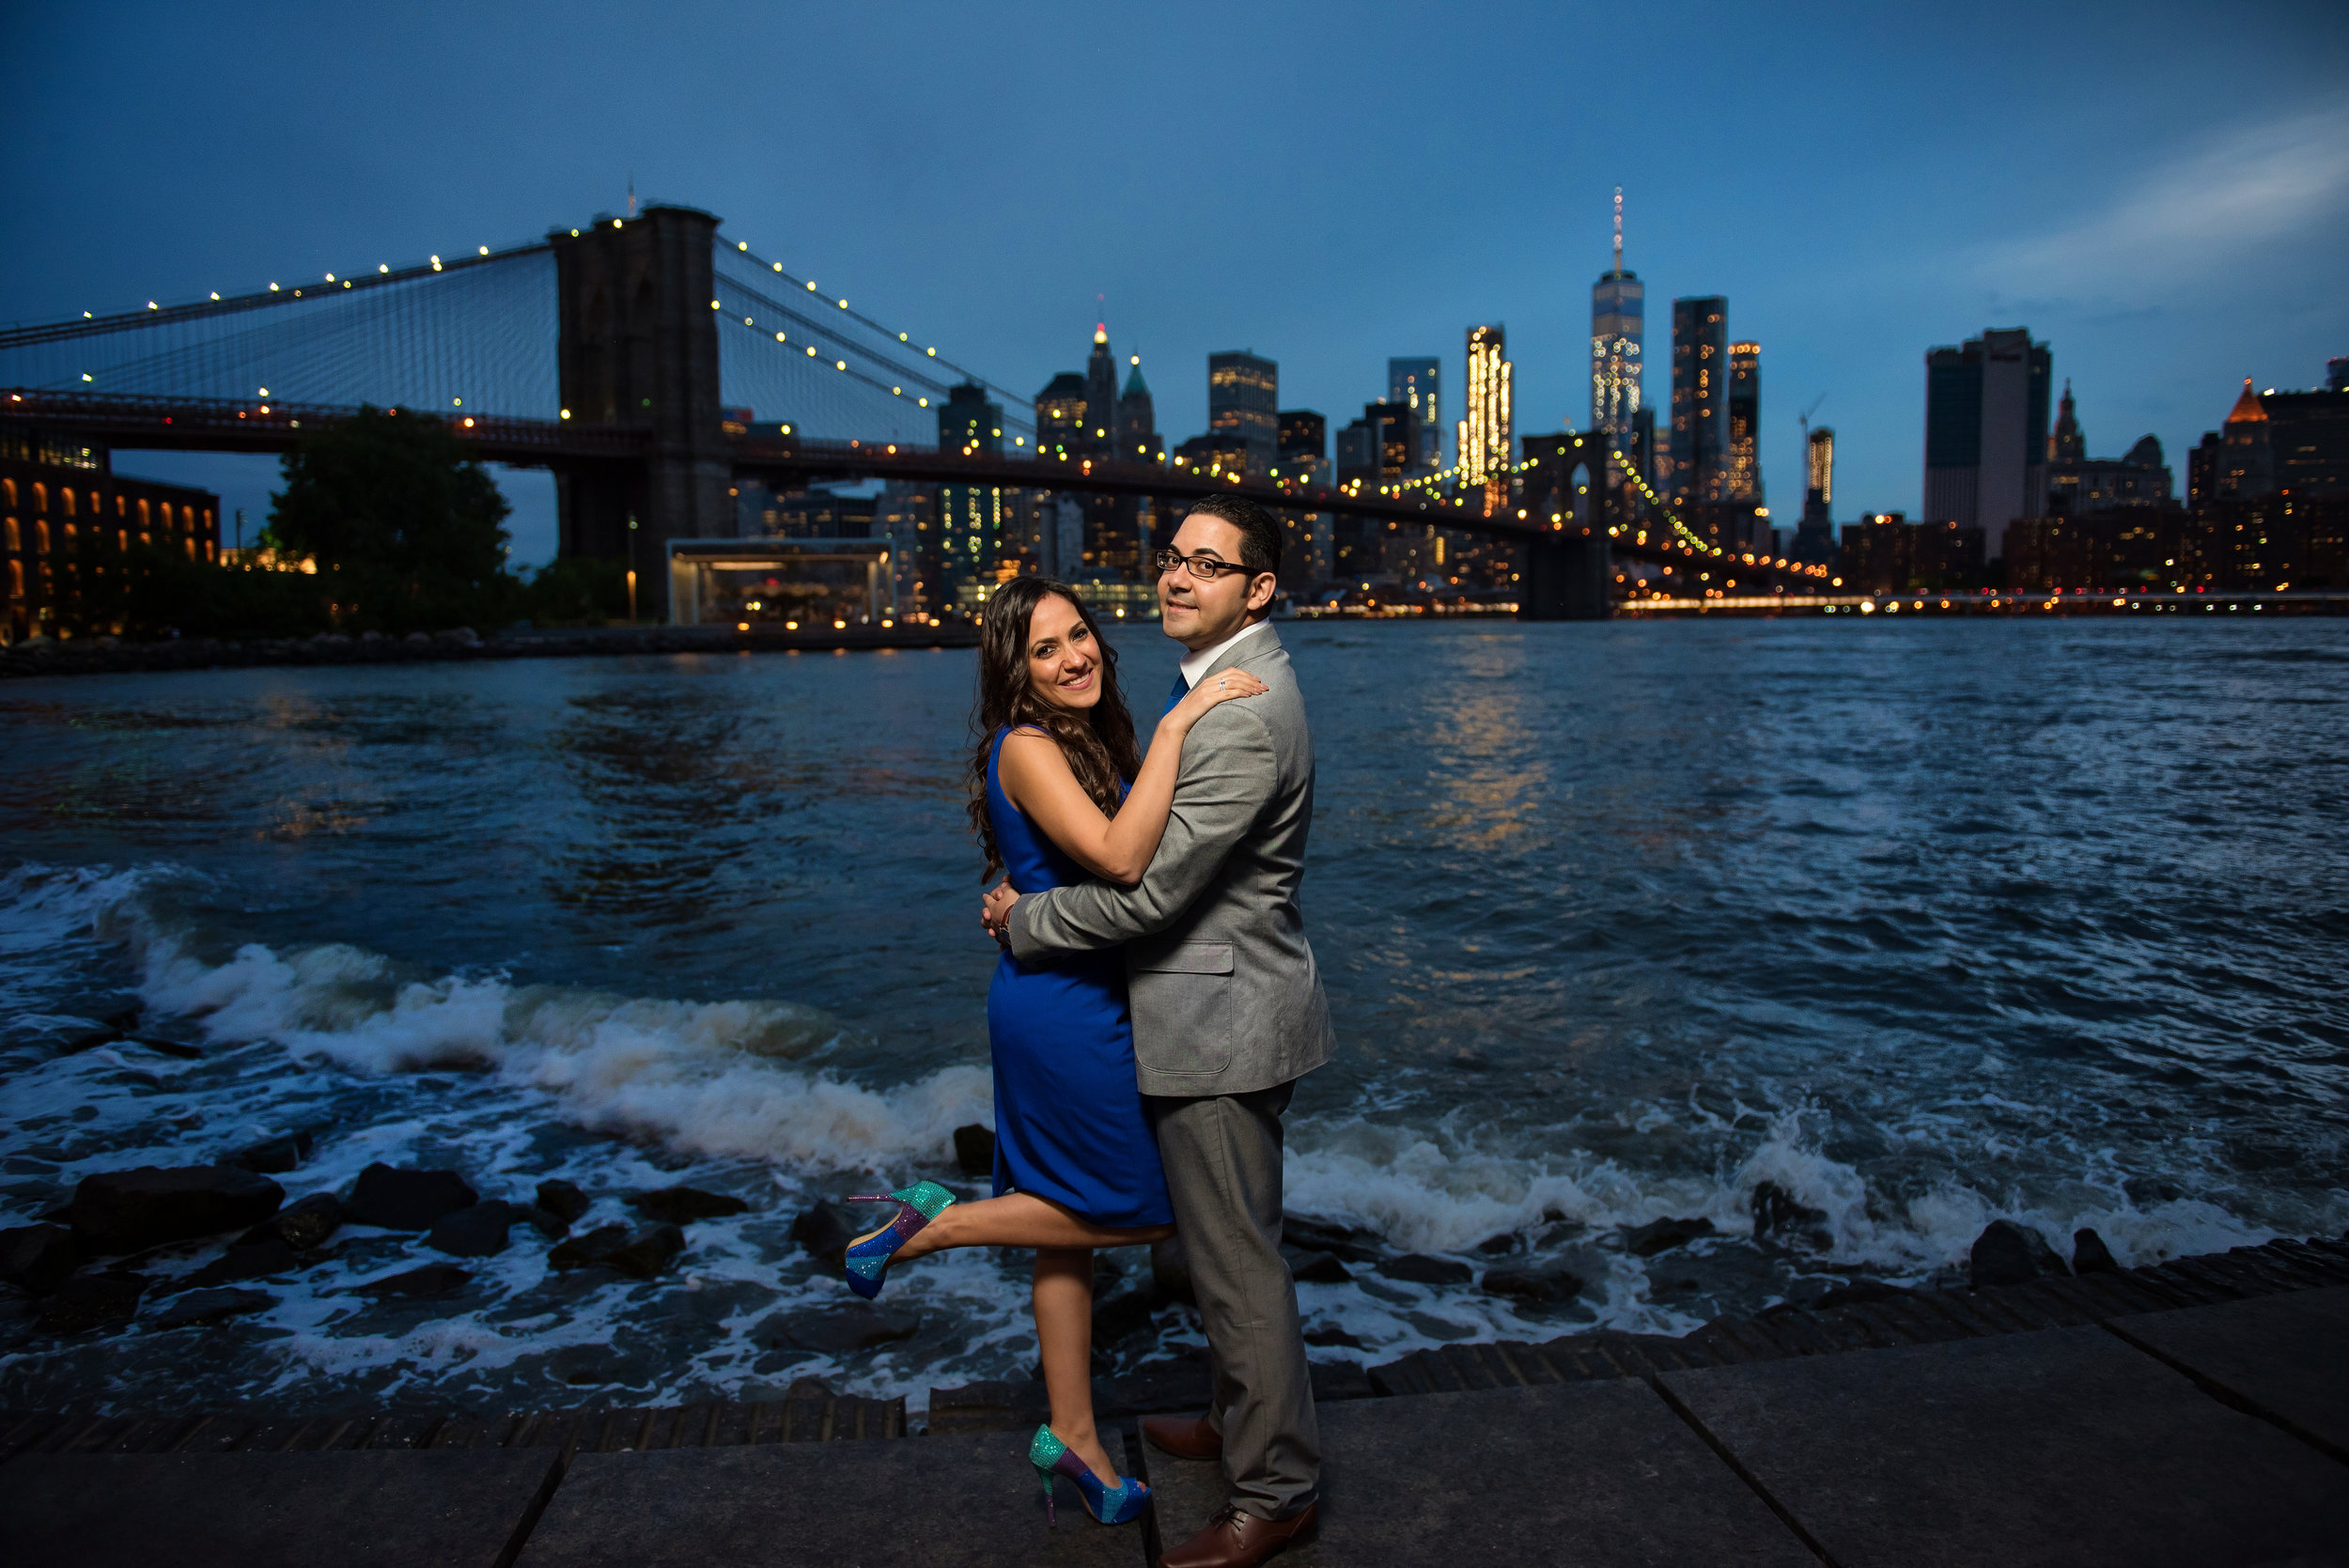 NJ and NYC wedding photographer - Brooklyn ny shoot